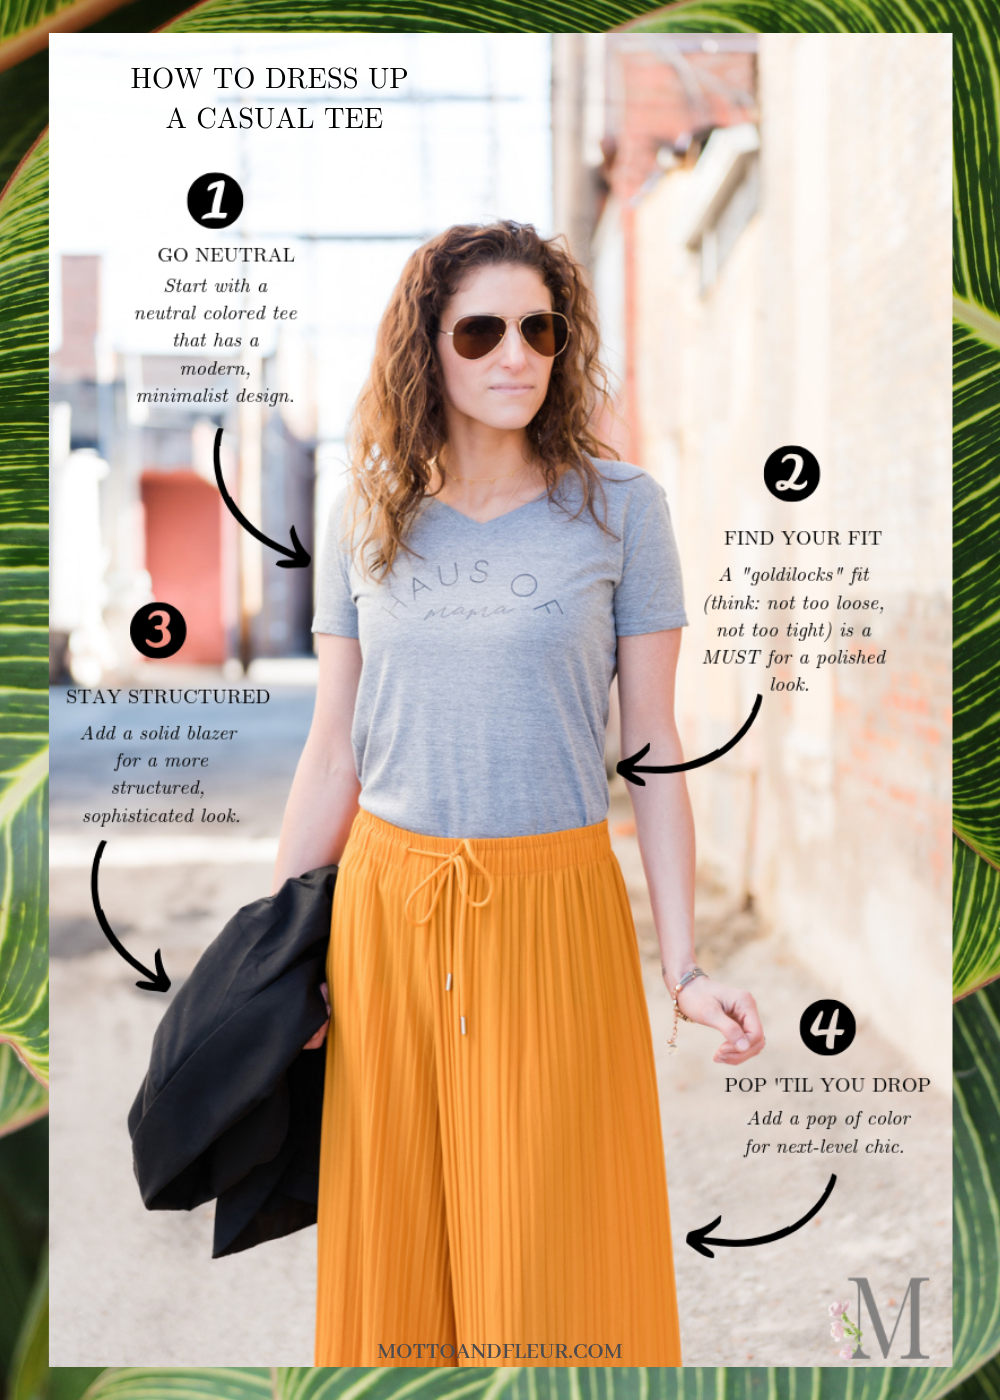 dress up casual tee graphic diagram